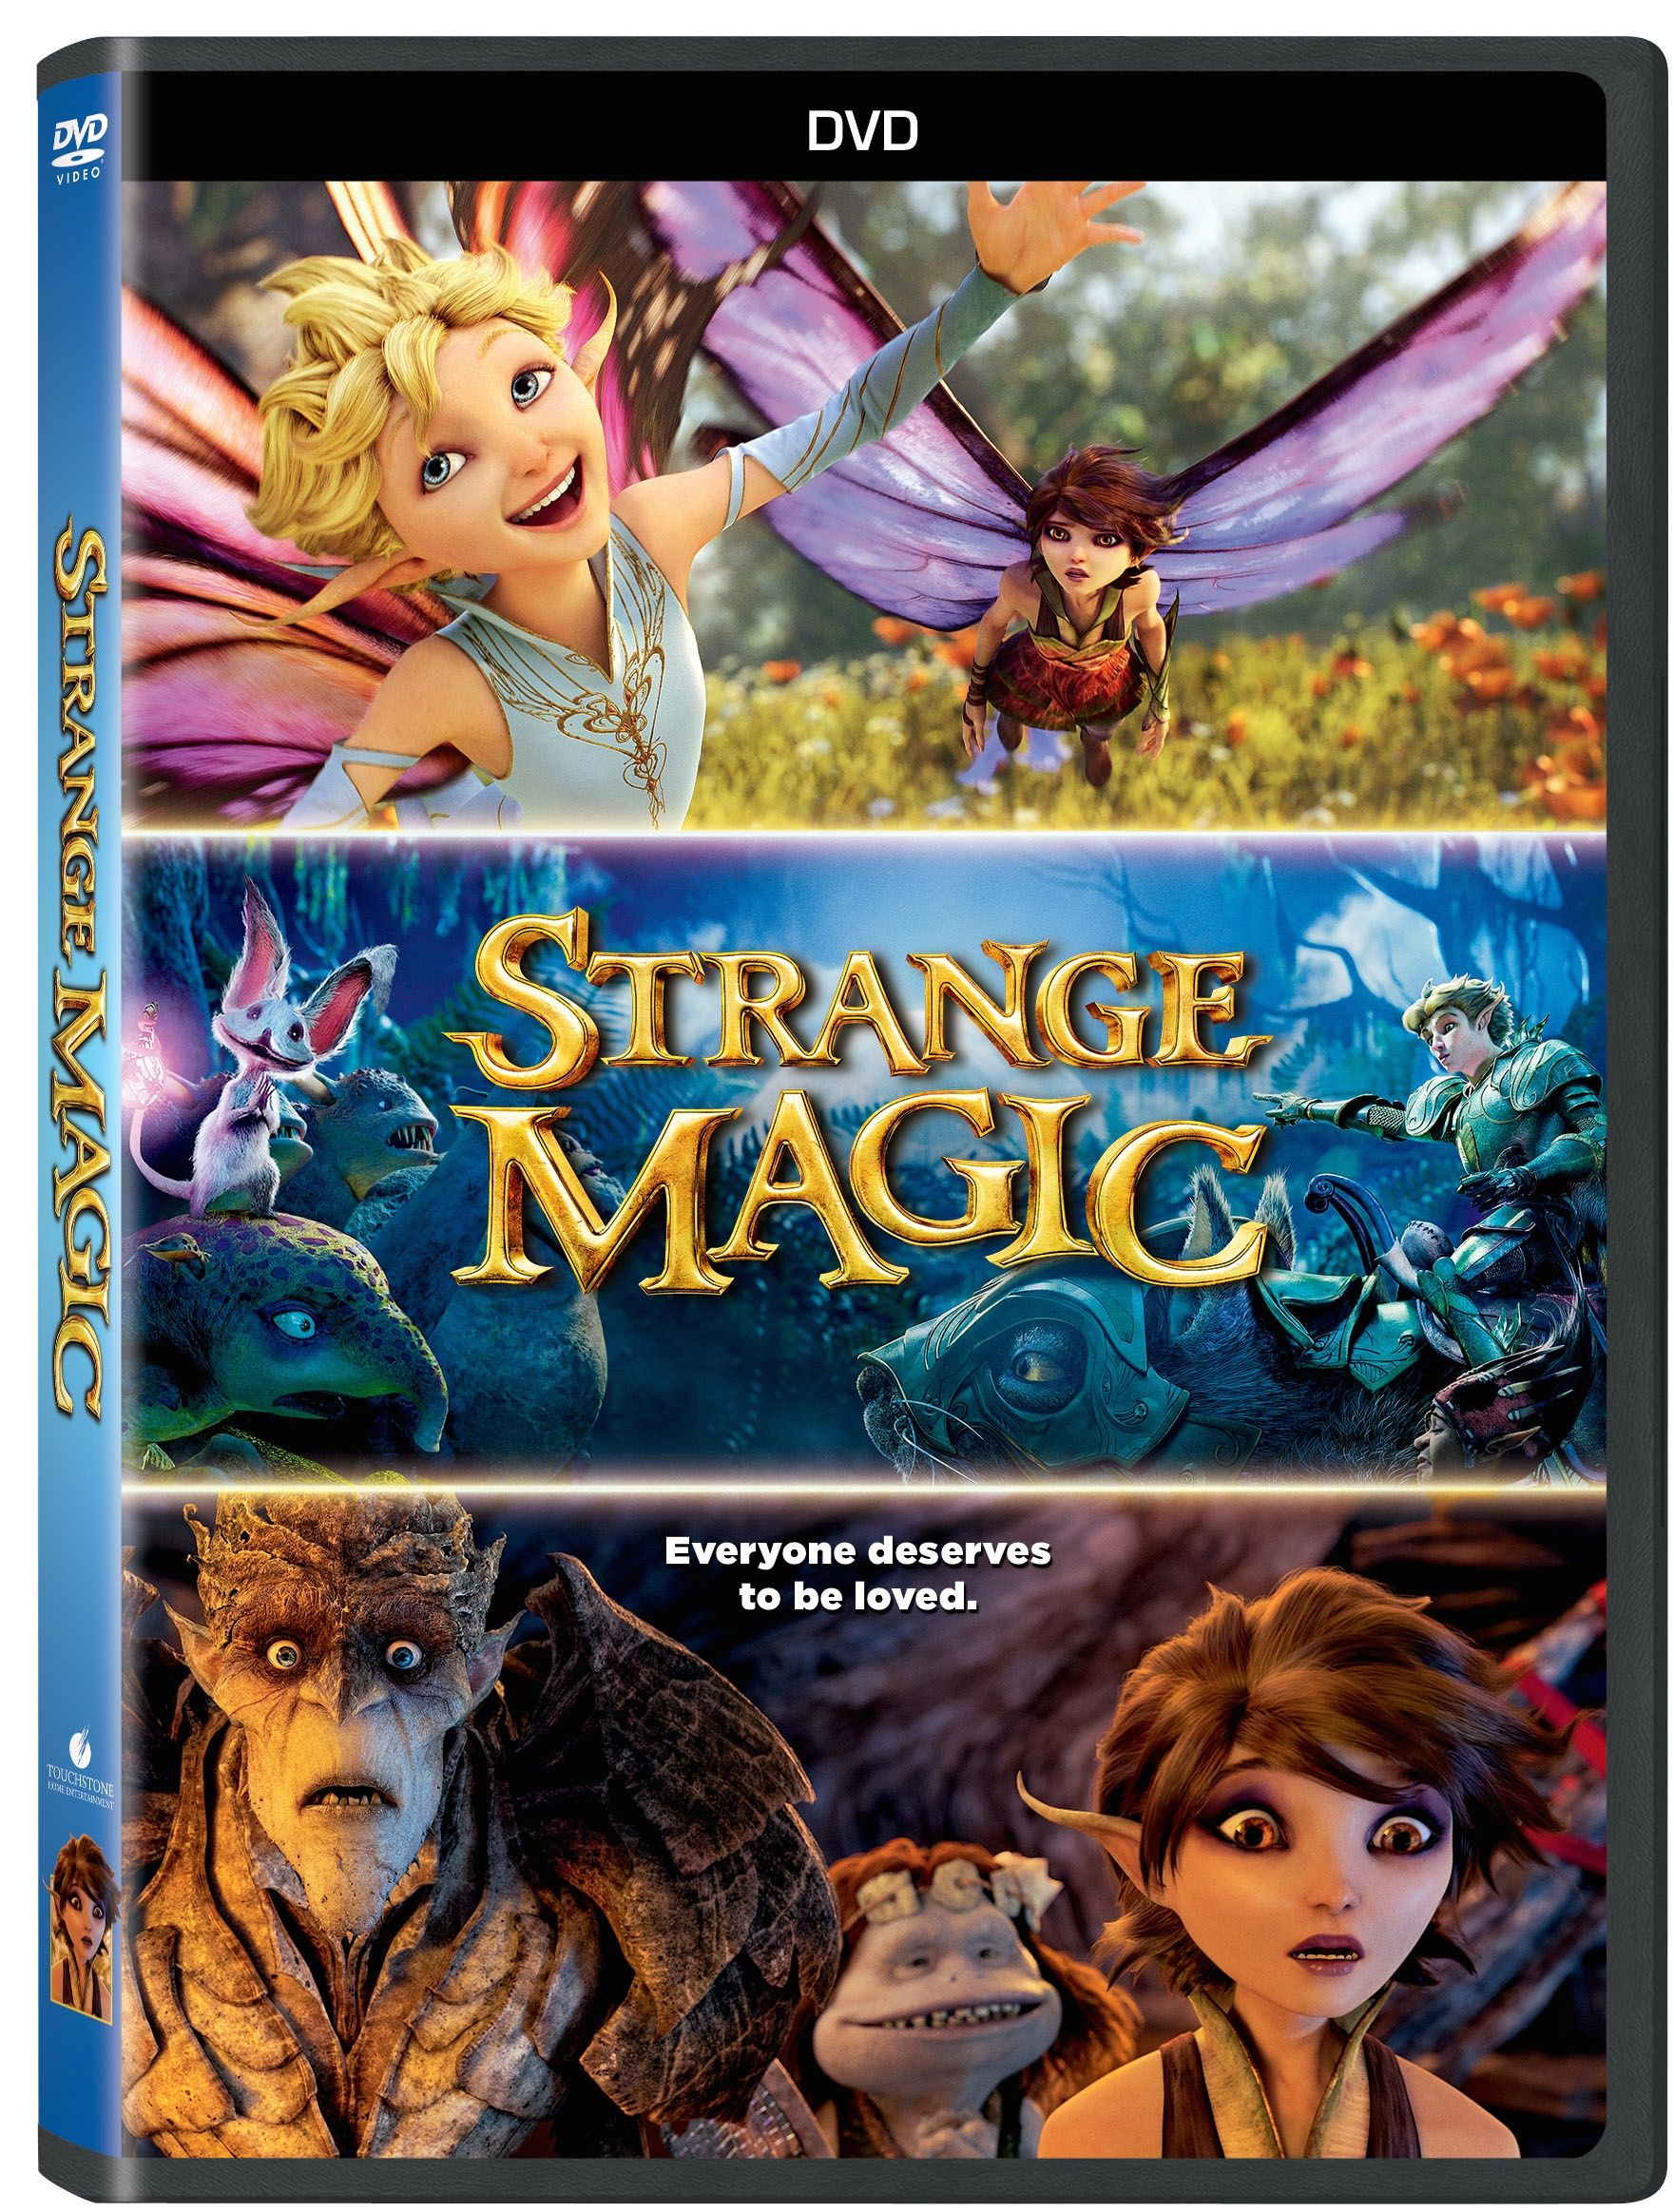 Strange Magic on DVD May 19